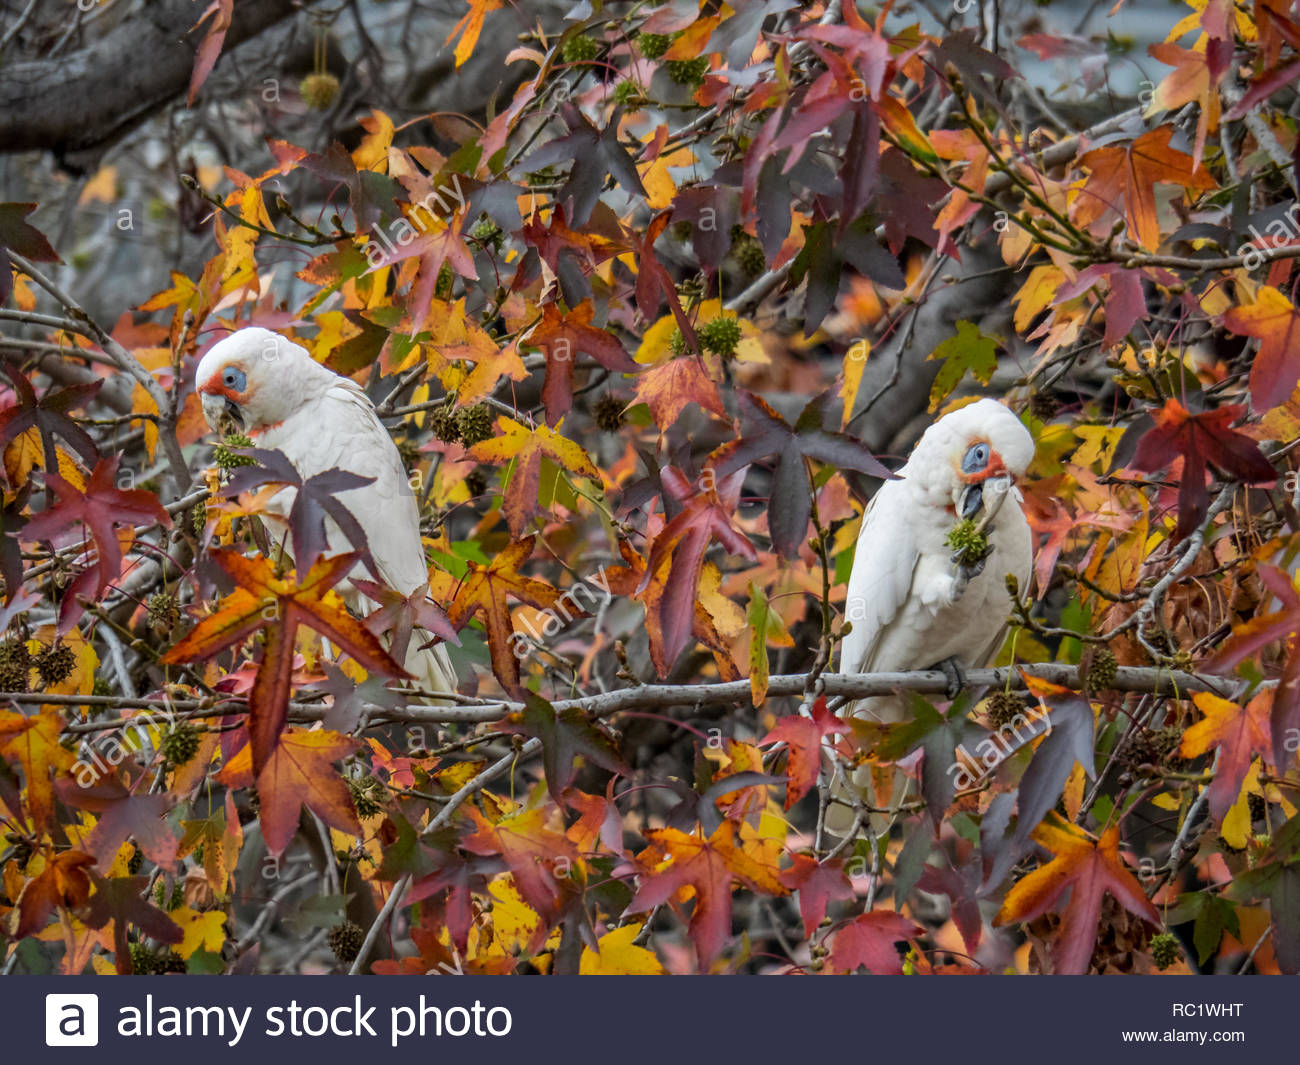 Corellas eating seeds in trees, Melbourne, Vic - Stock Image